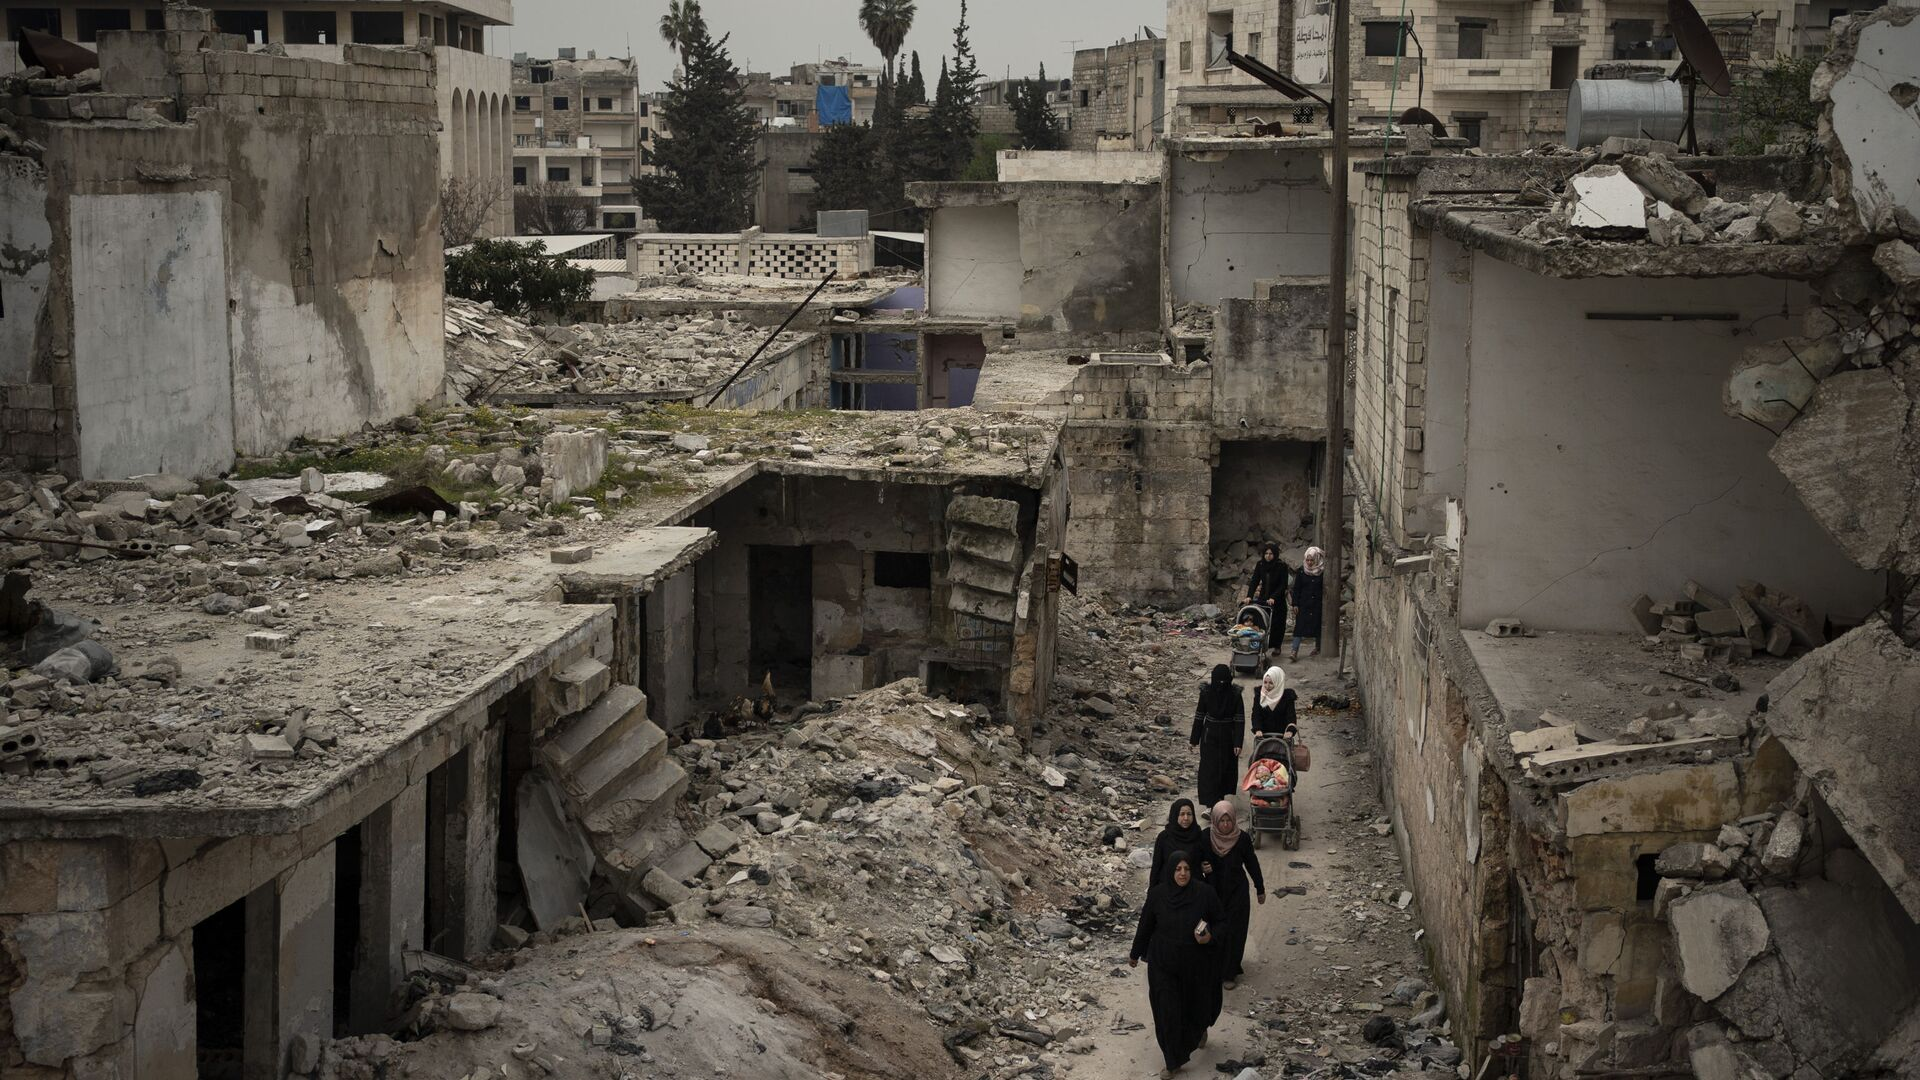 In this March 12, 2020 file photo, women walk in a neighborhood heavily damaged by airstrikes in Idlib, Syria. - Sputnik International, 1920, 14.10.2021